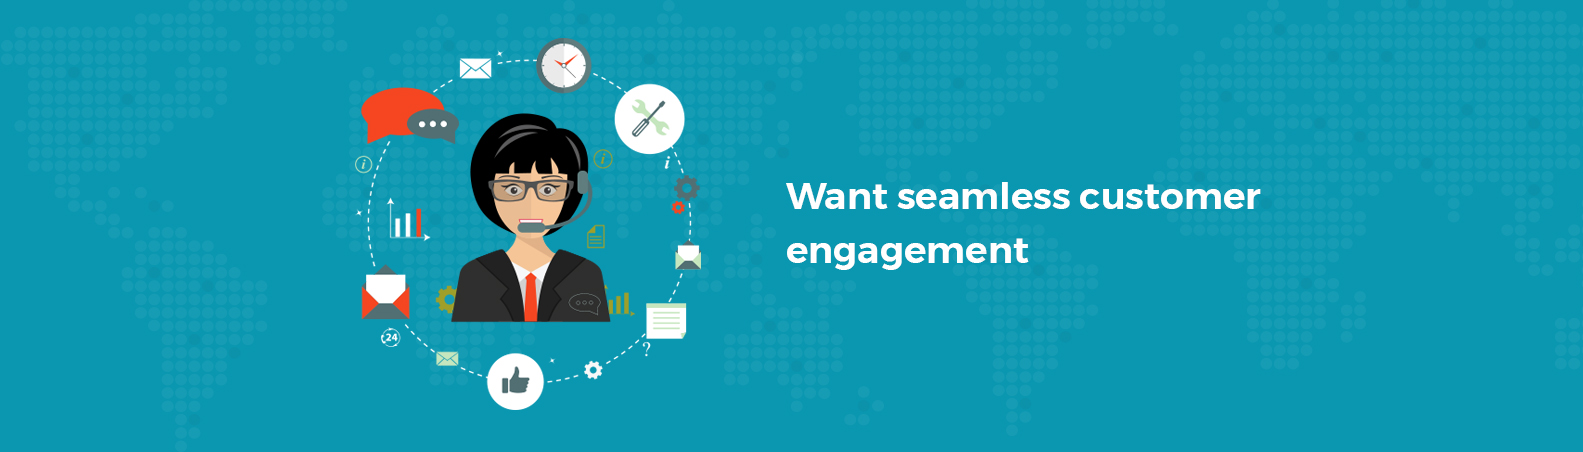 Want Seamless Customer Engagement